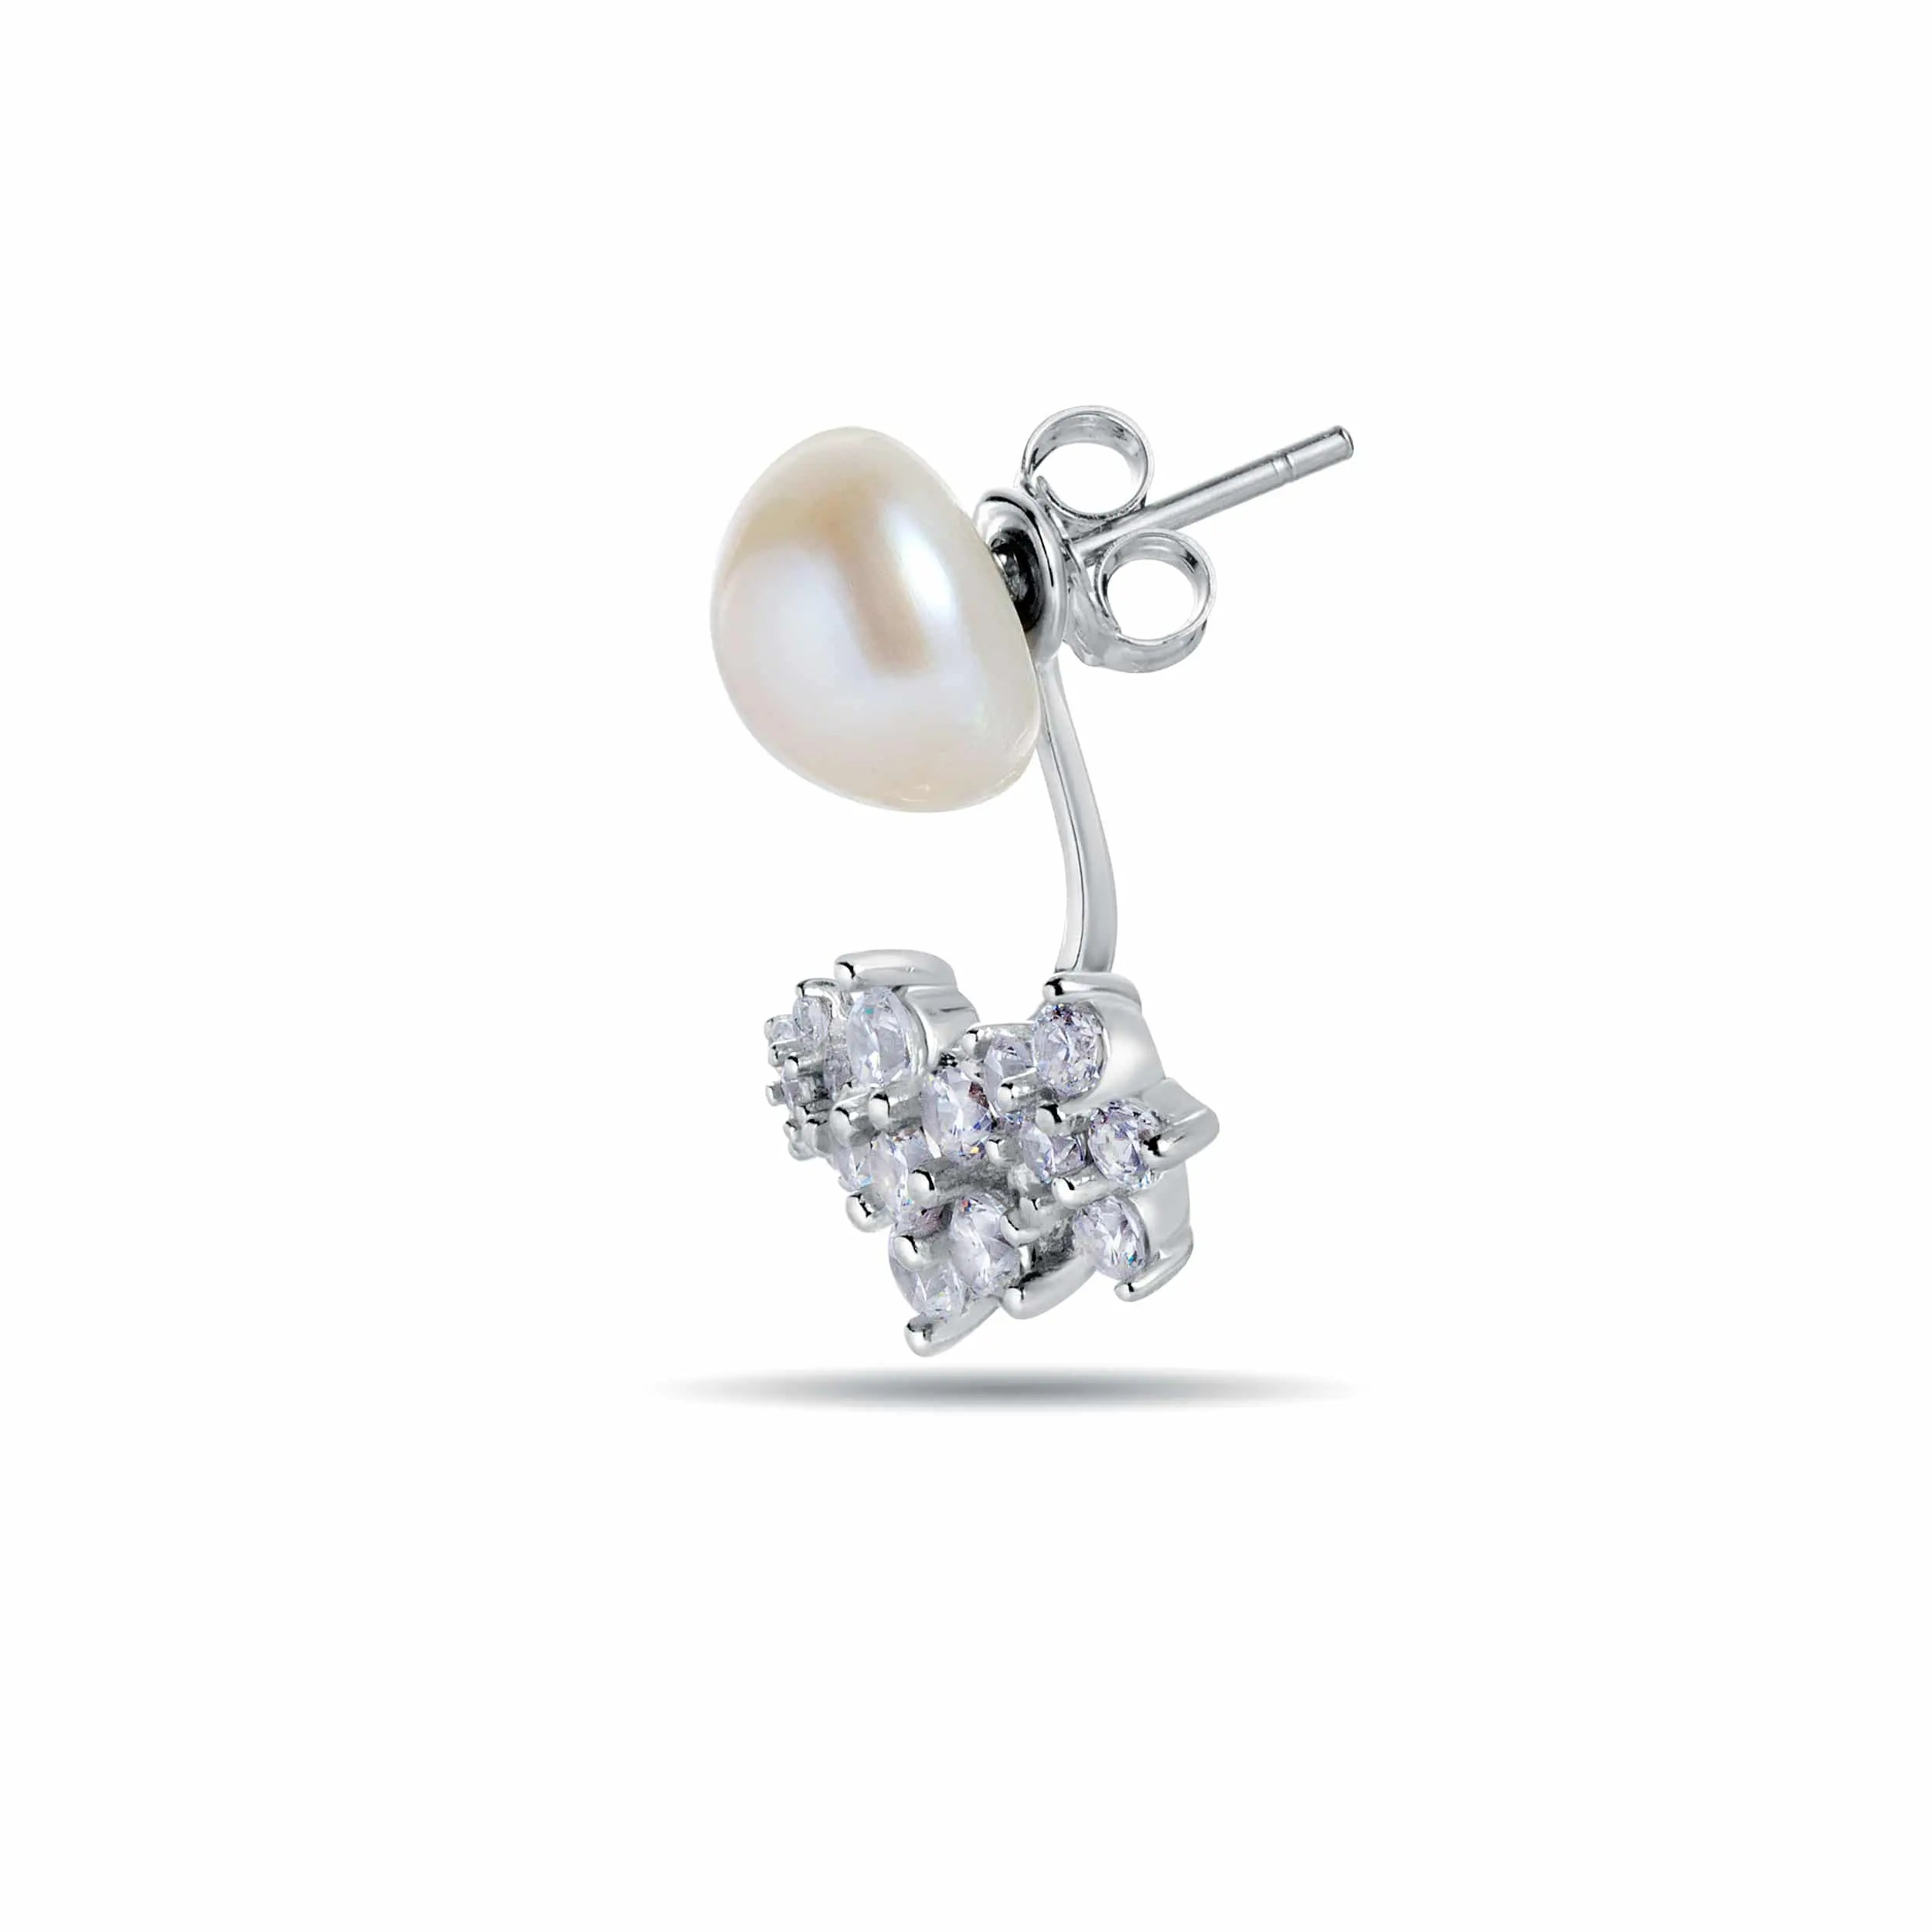 Forgetmenot Sterling Silver Pearl Earrings With Jacket Fitted With  Freshwater Pearls By